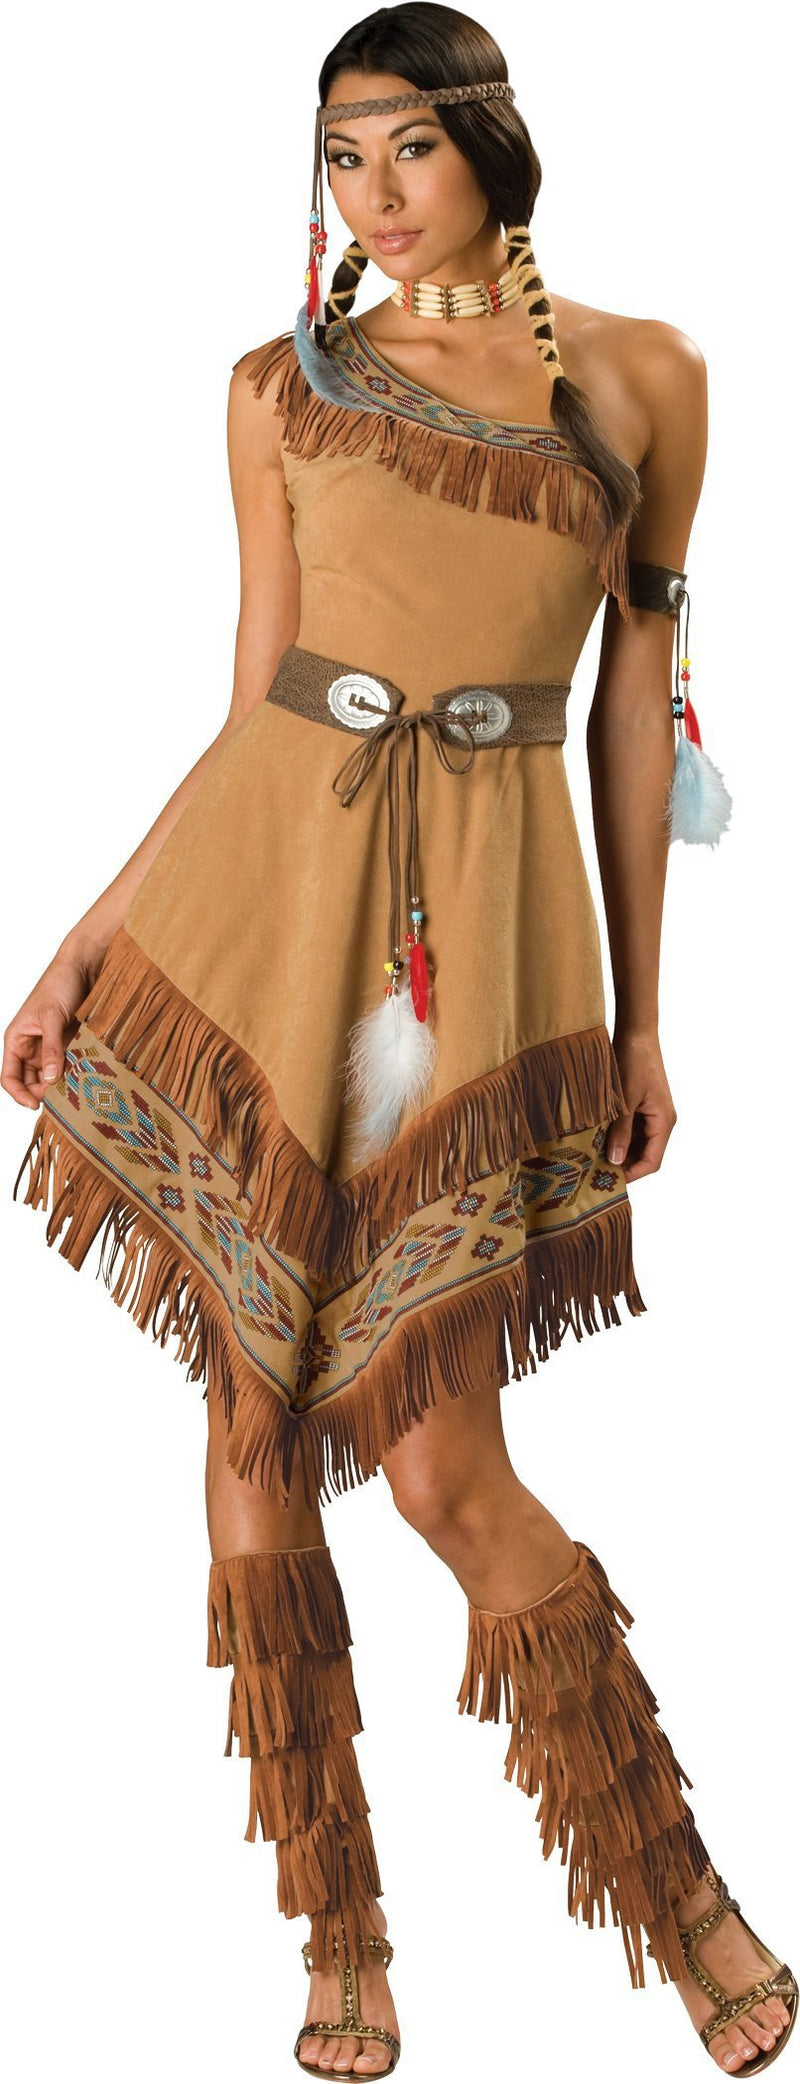 InCharacter Costumes LARGE Indian Maiden Deluxe Costume